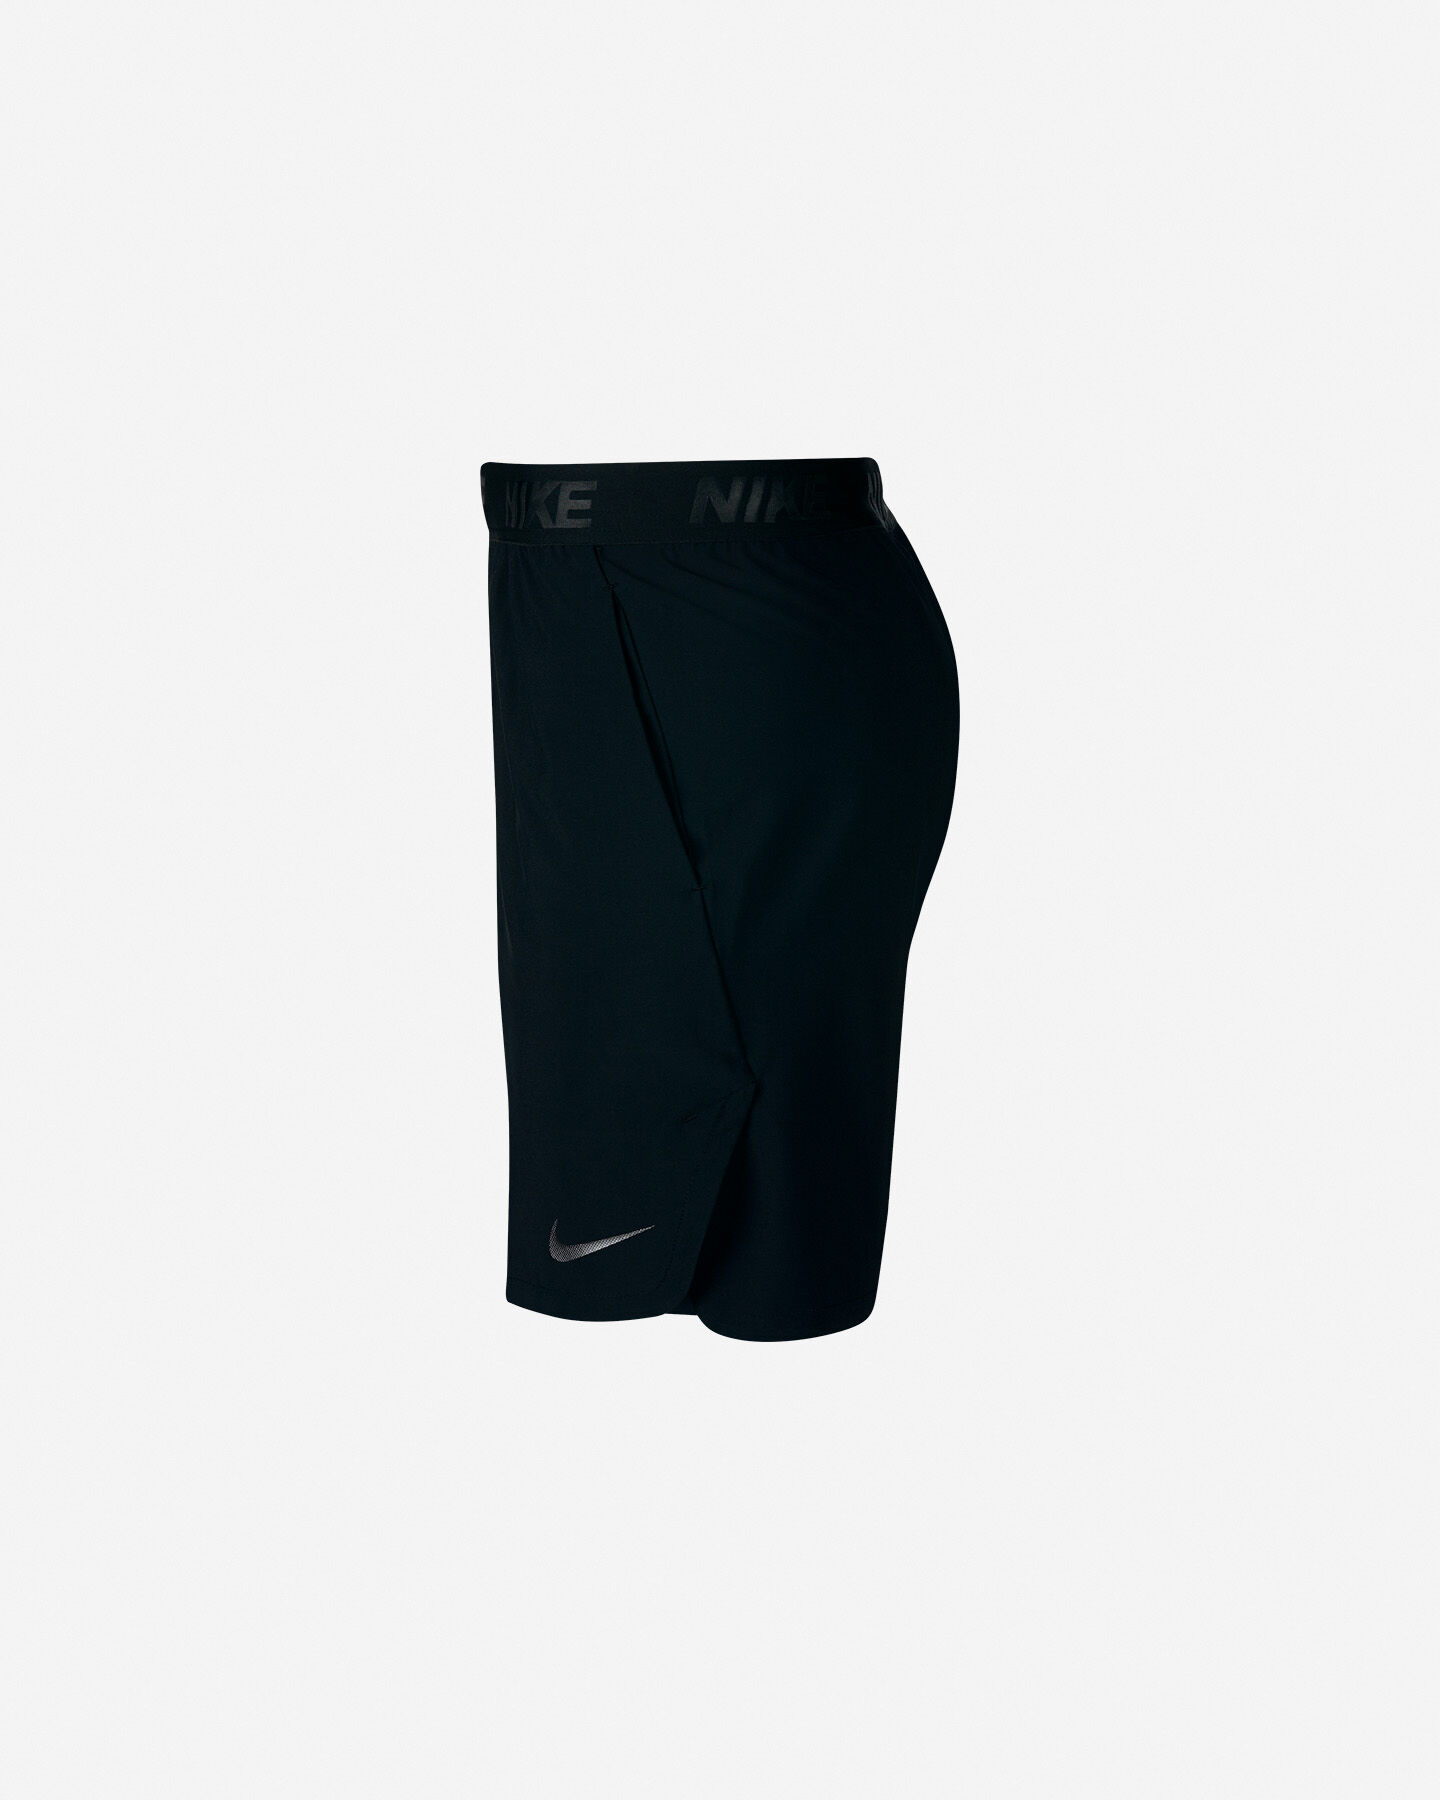 Pantalone training NIKE WOVEN M S4032694 scatto 1